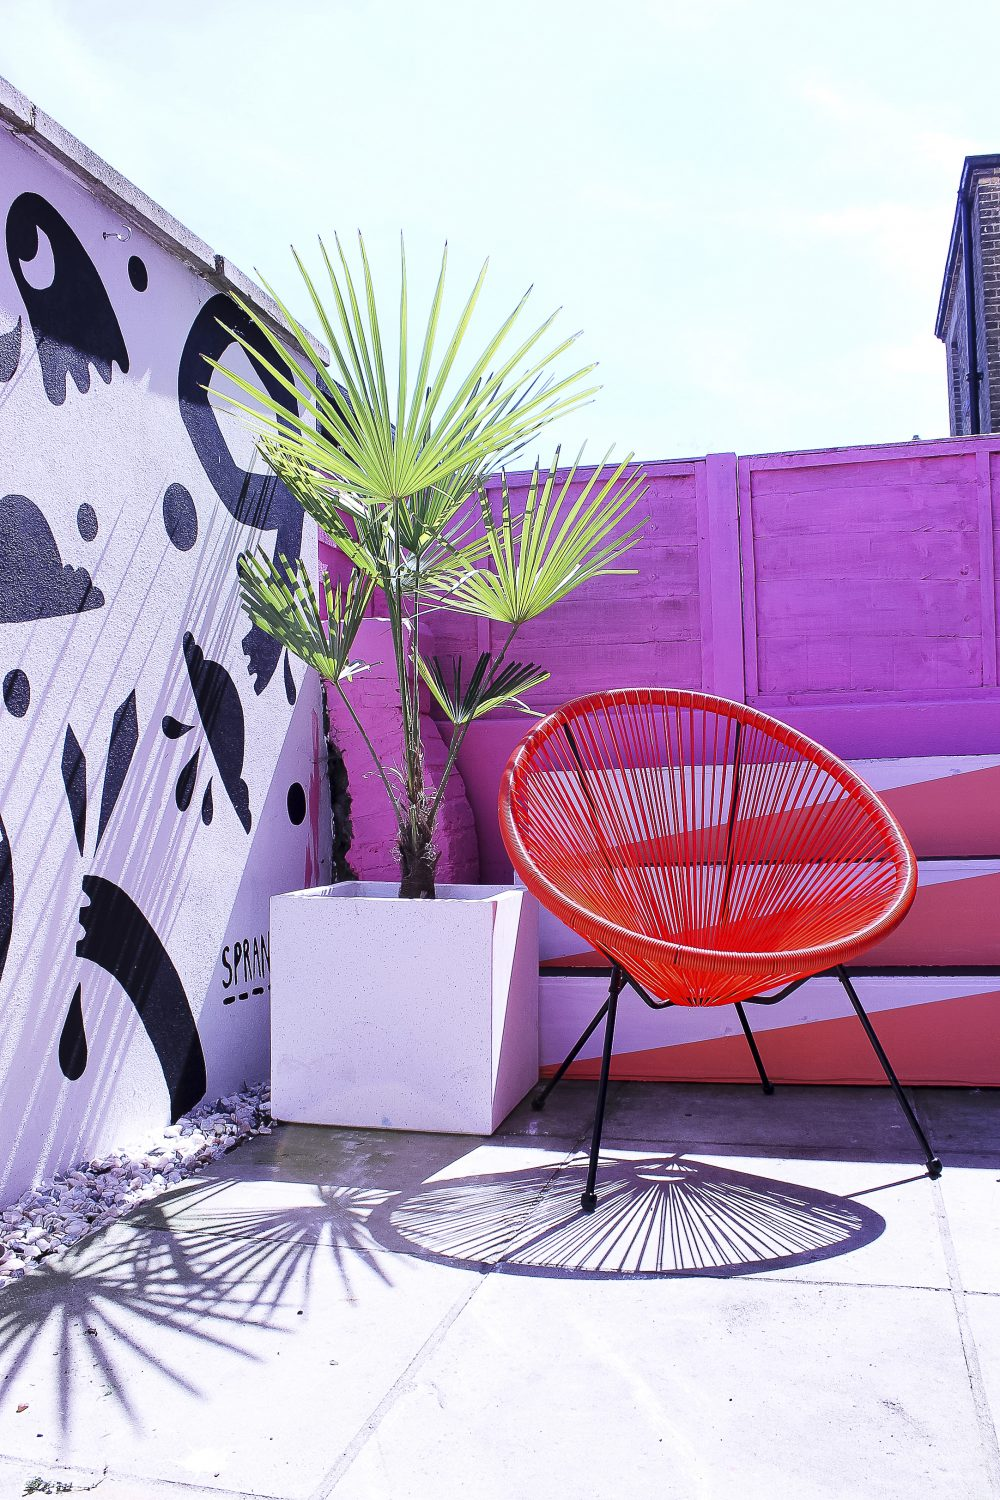 The kitchen looks out onto the courtyard garden. Amy shares a studio in Margate with her fashion designer housemate and another friend, the illustrator Sprankenstein, who designed the mural on the wall. Bubblegum pinks combined with red and potted palms give the garden an uplifting feel no matter the season